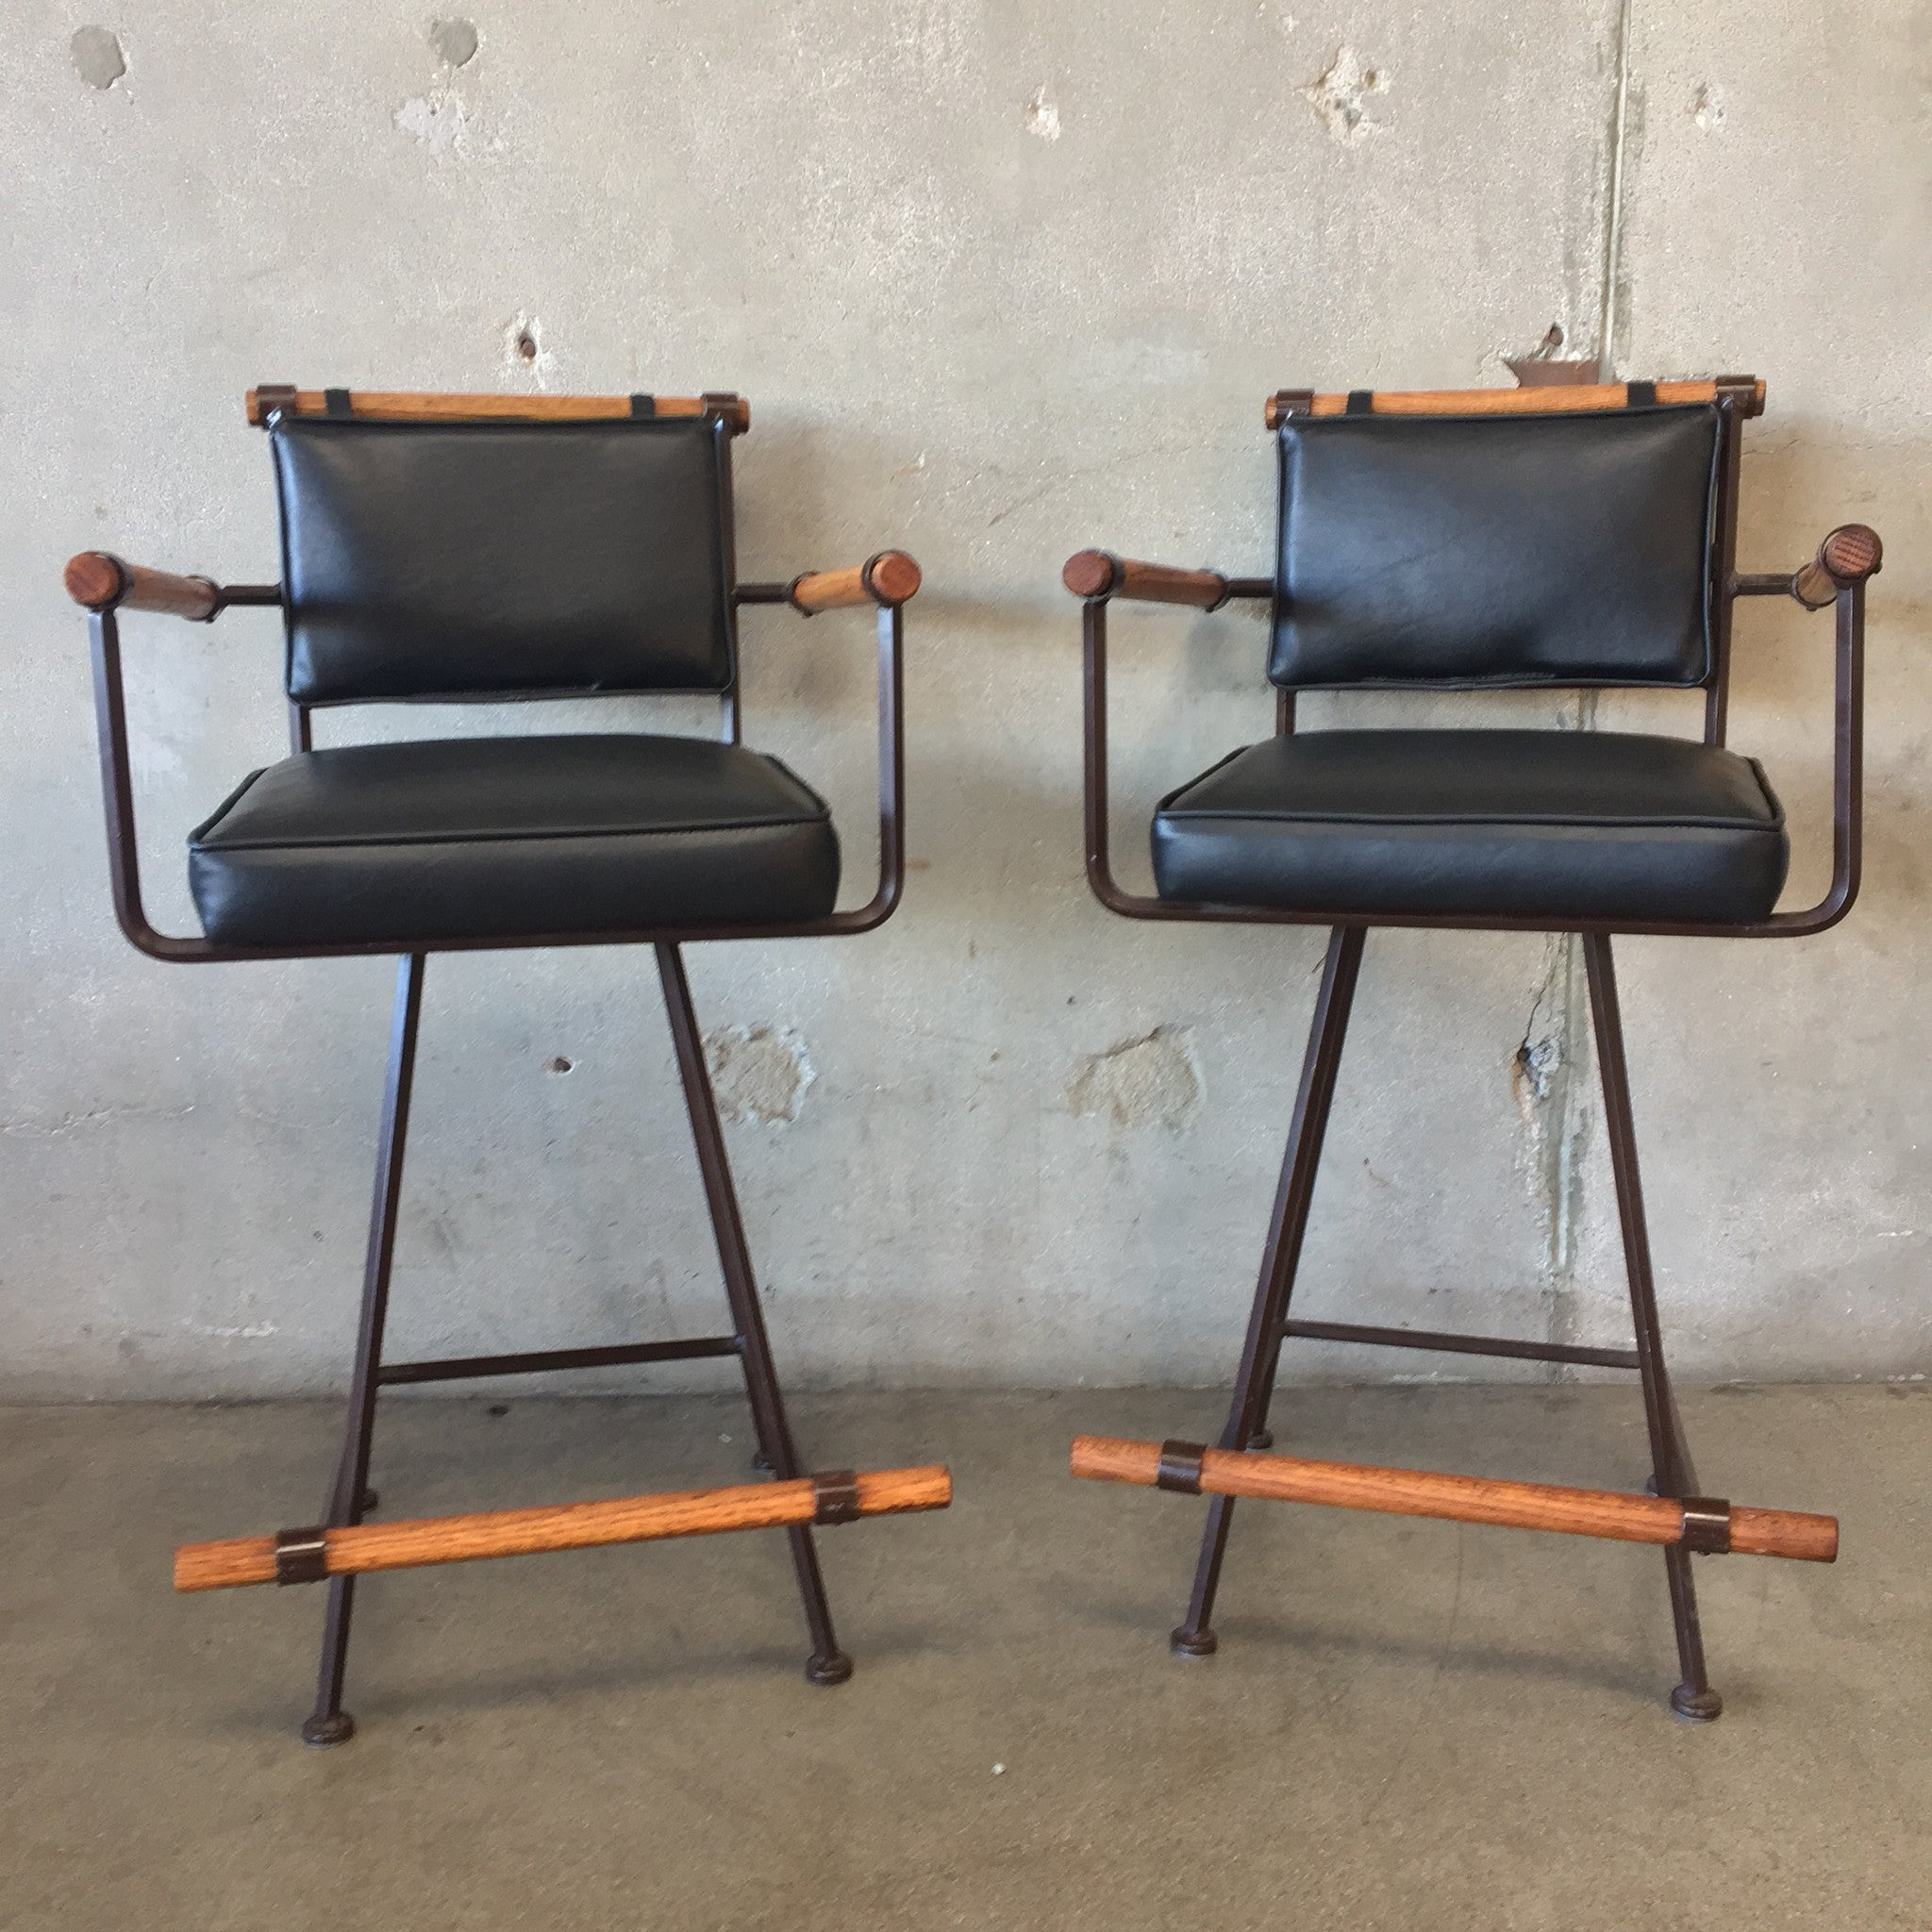 vintage bar stools by inca products vintage bar stools by inca products